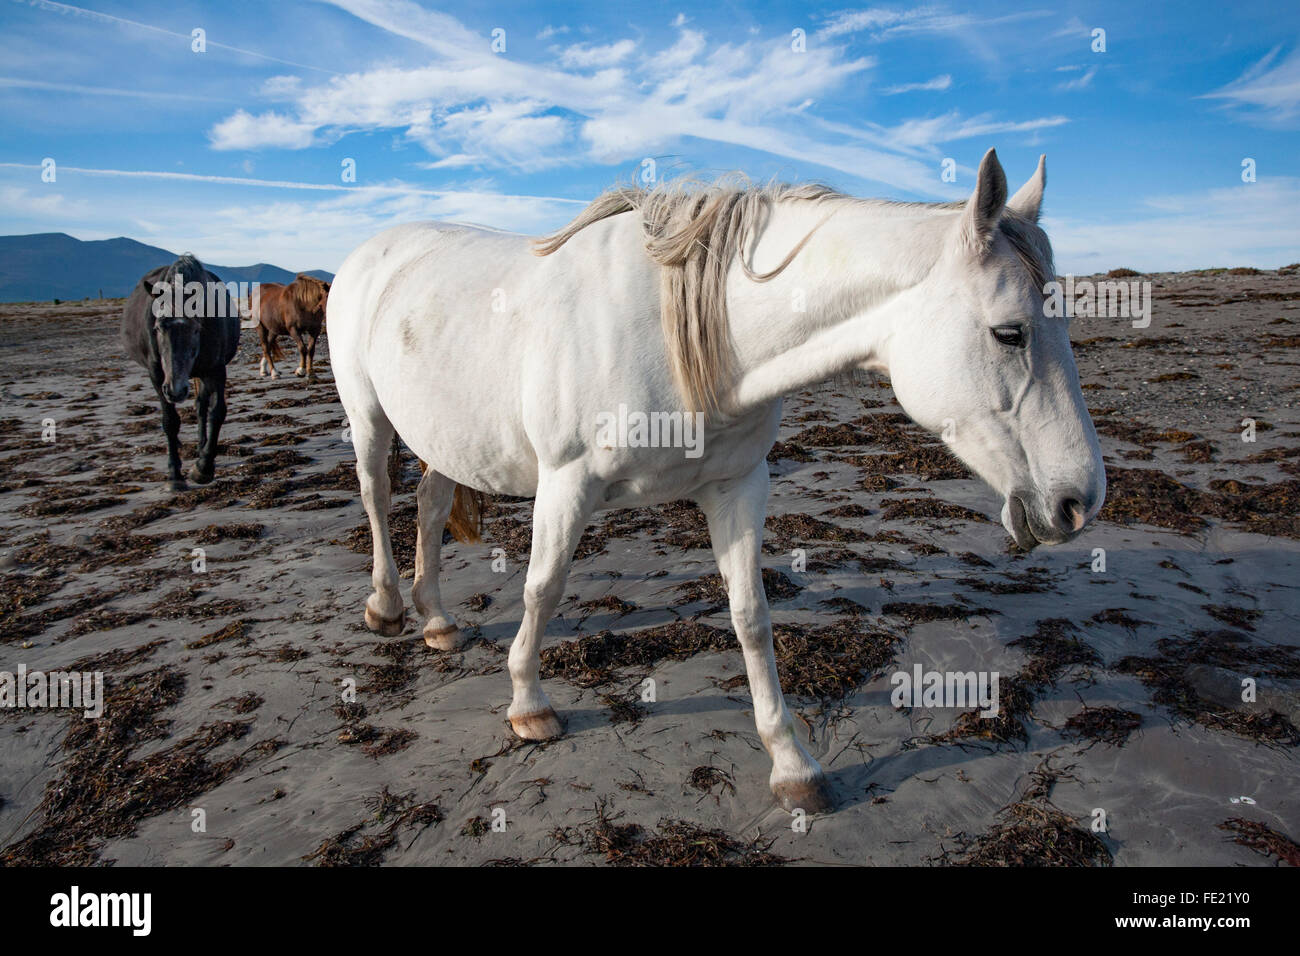 Chevaux sur la plage, le Magherees, péninsule de Dingle, comté de Kerry, Irlande. Photo Stock